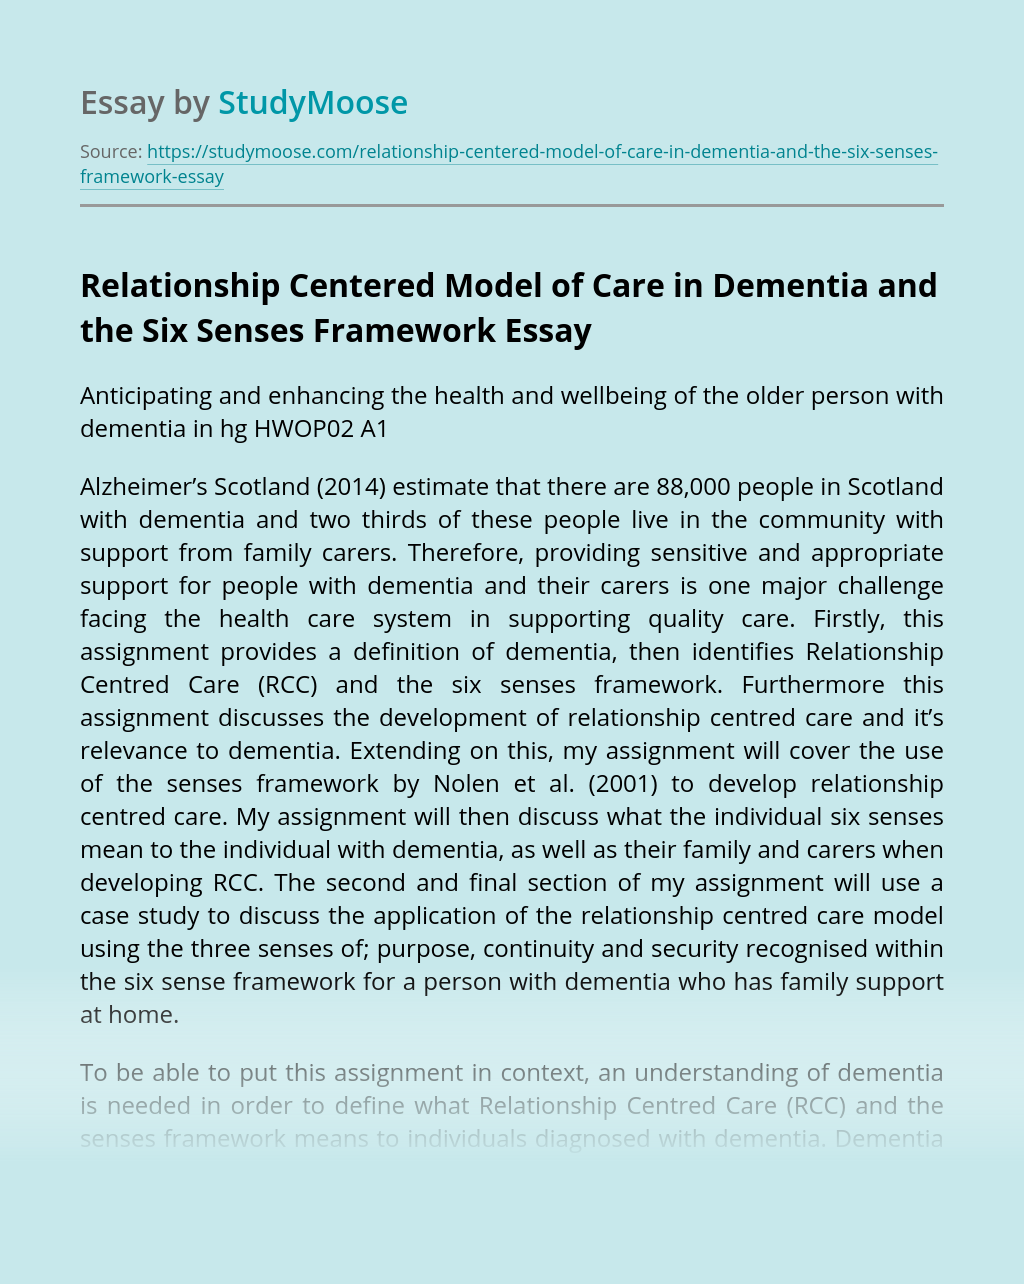 Relationship Centered Model of Care in Dementia and the Six Senses Framework